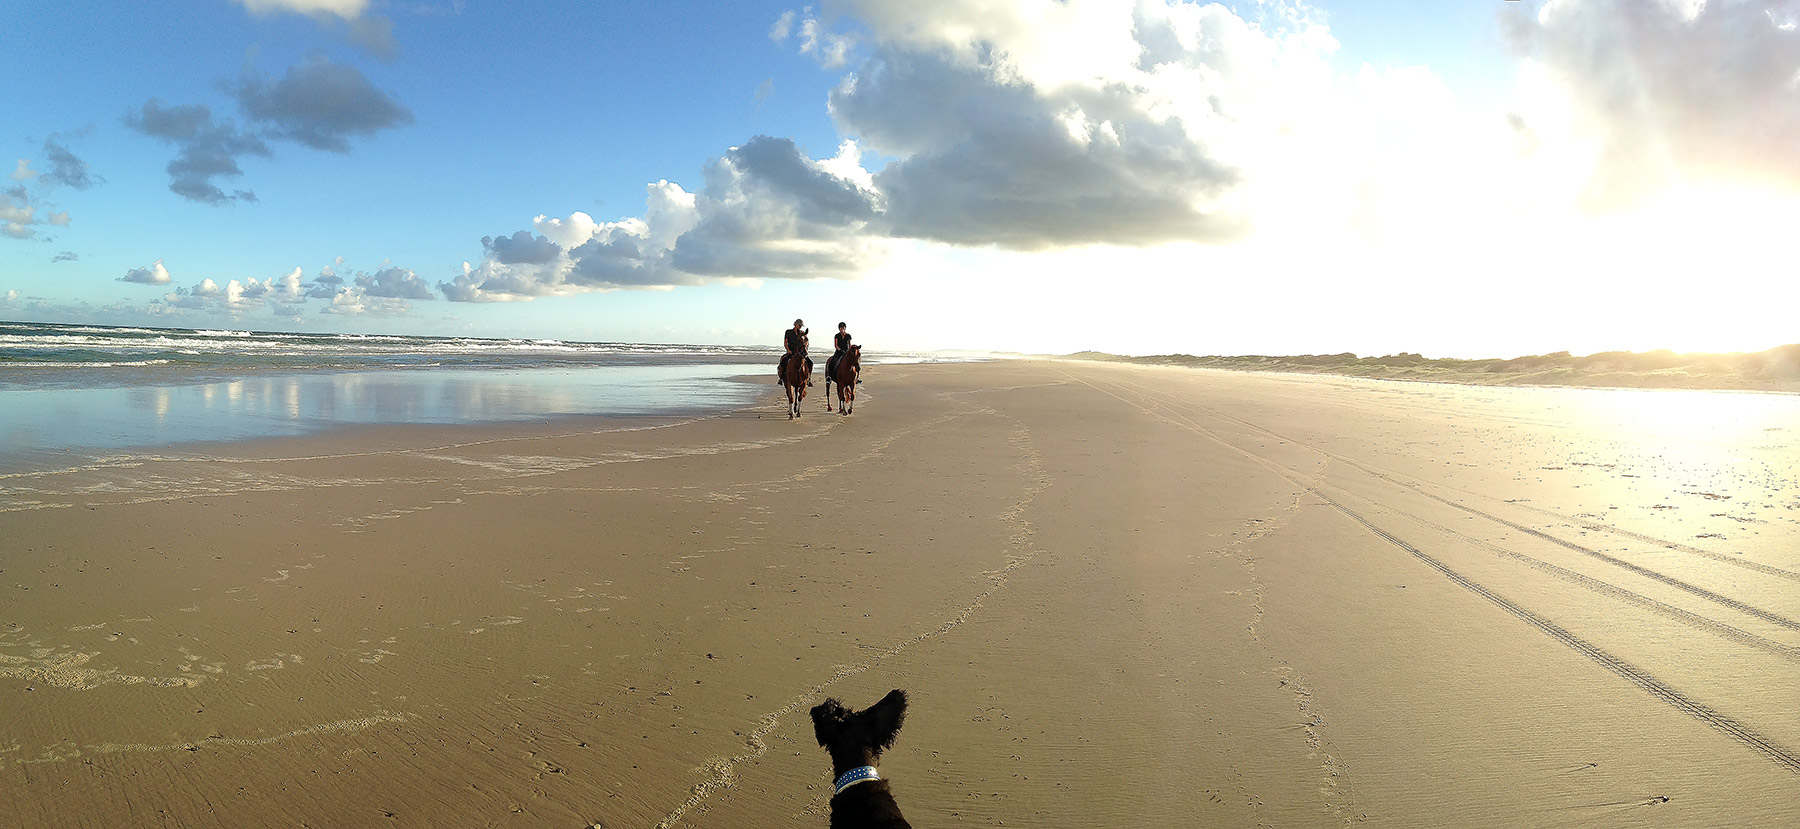 Patti on Penny and Nick on Legs, Patches Beach Feb 2016